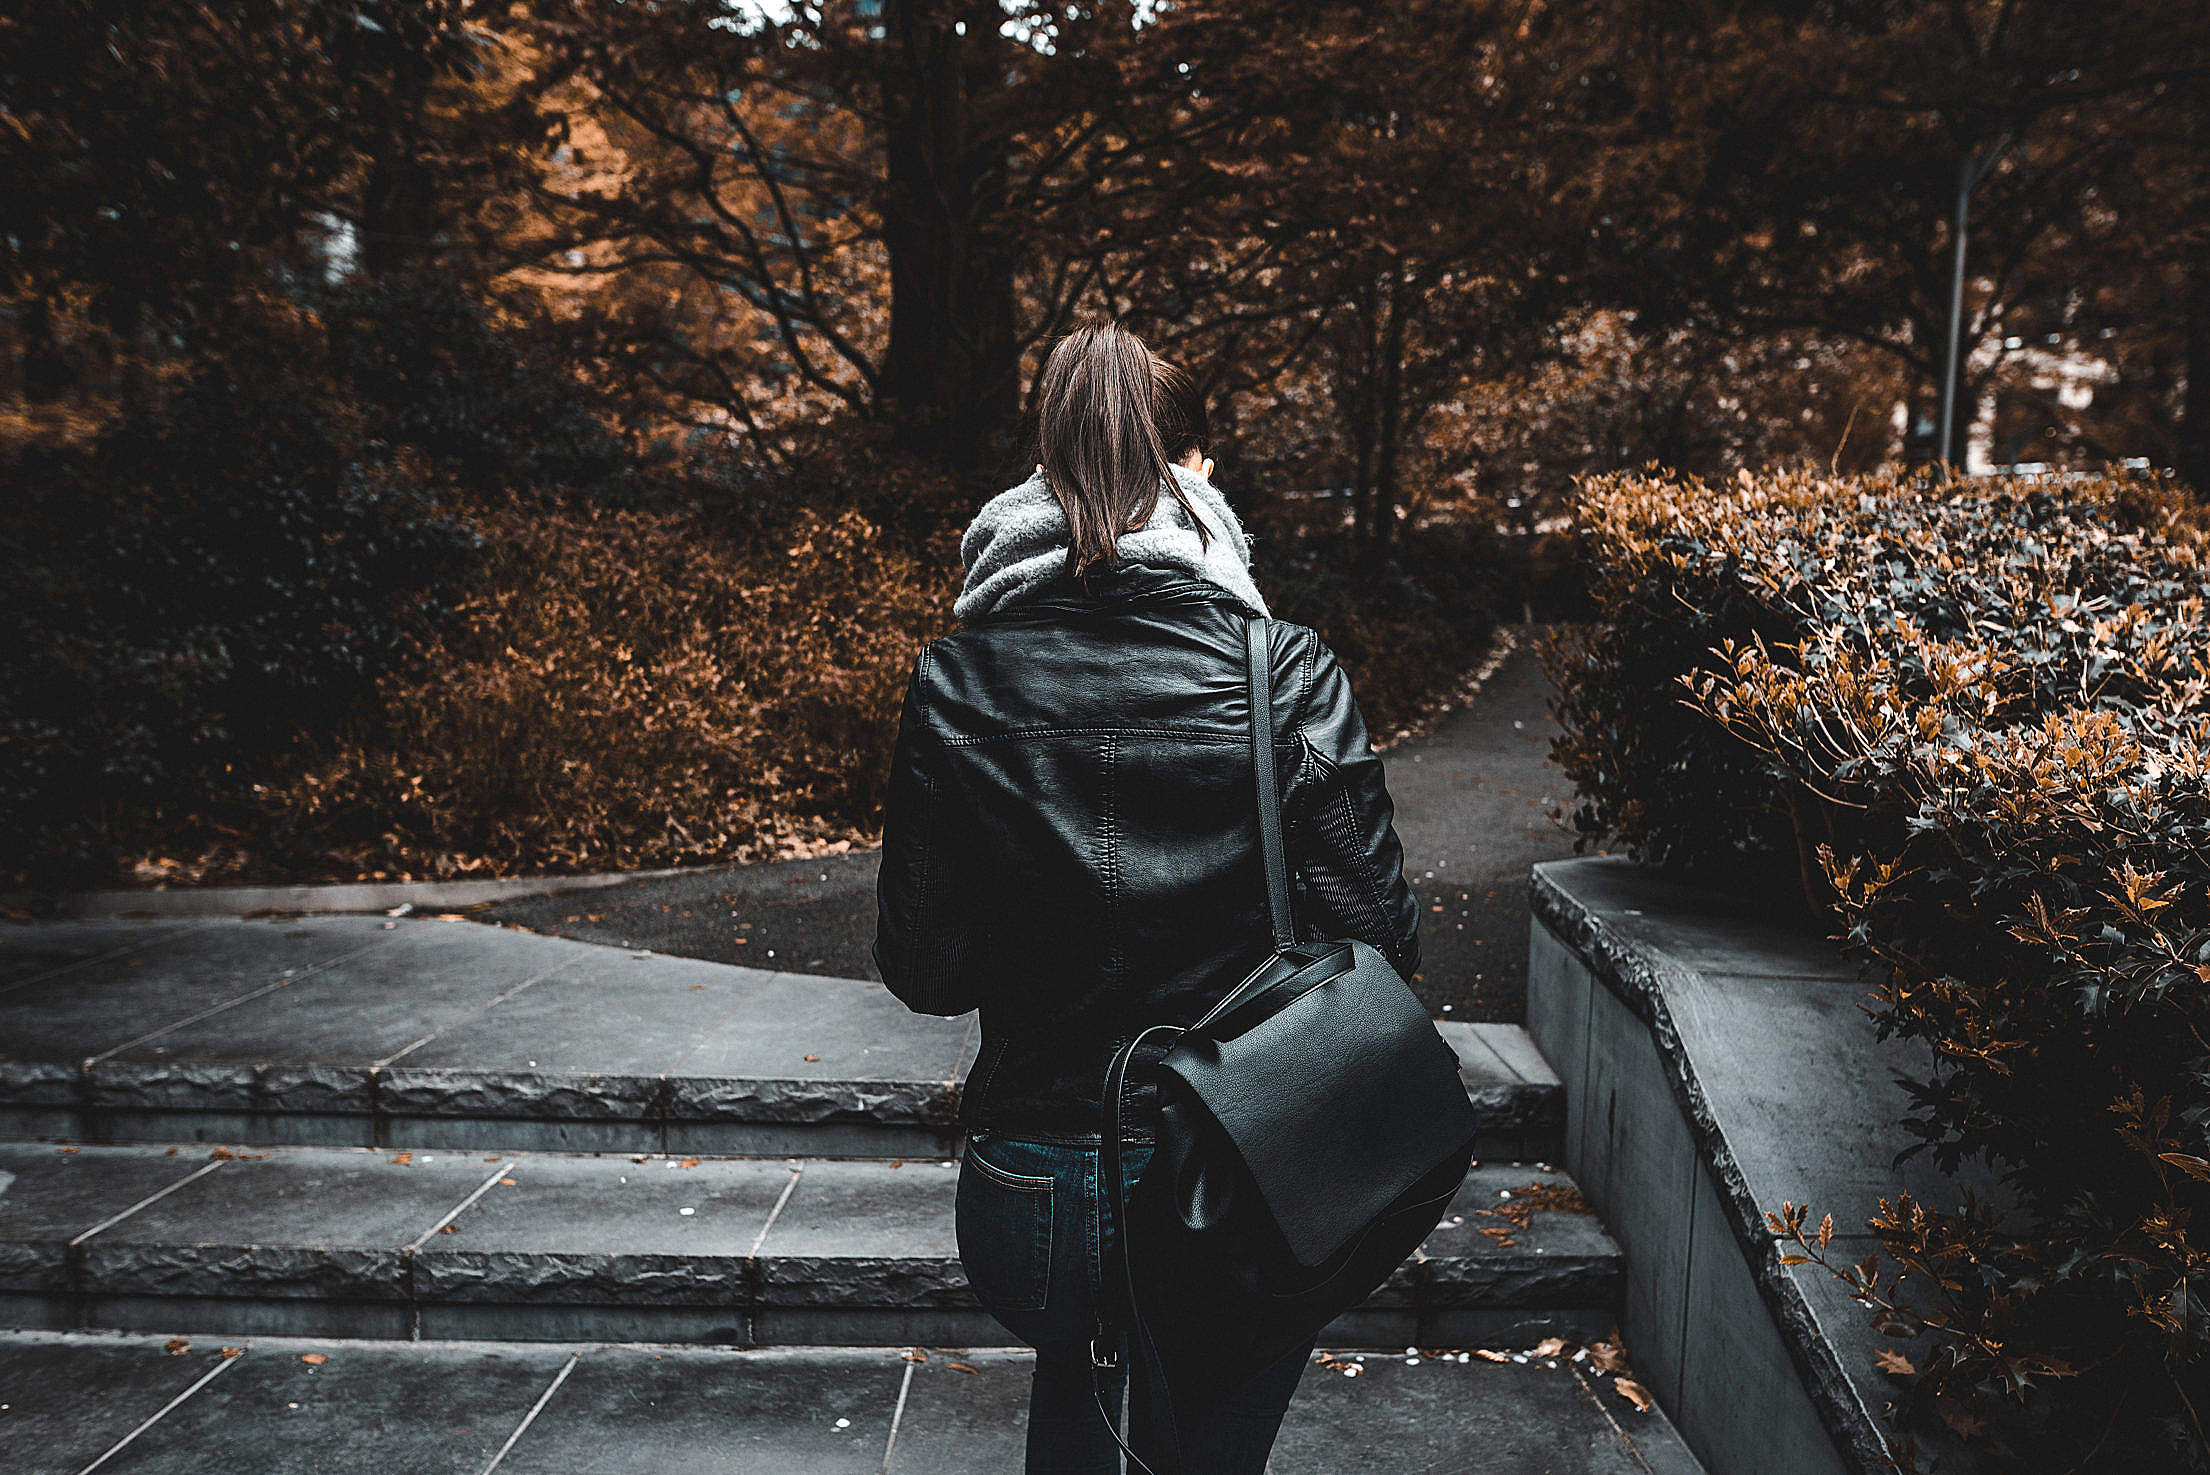 Young Woman Walking Alone in Park Free Stock Photo